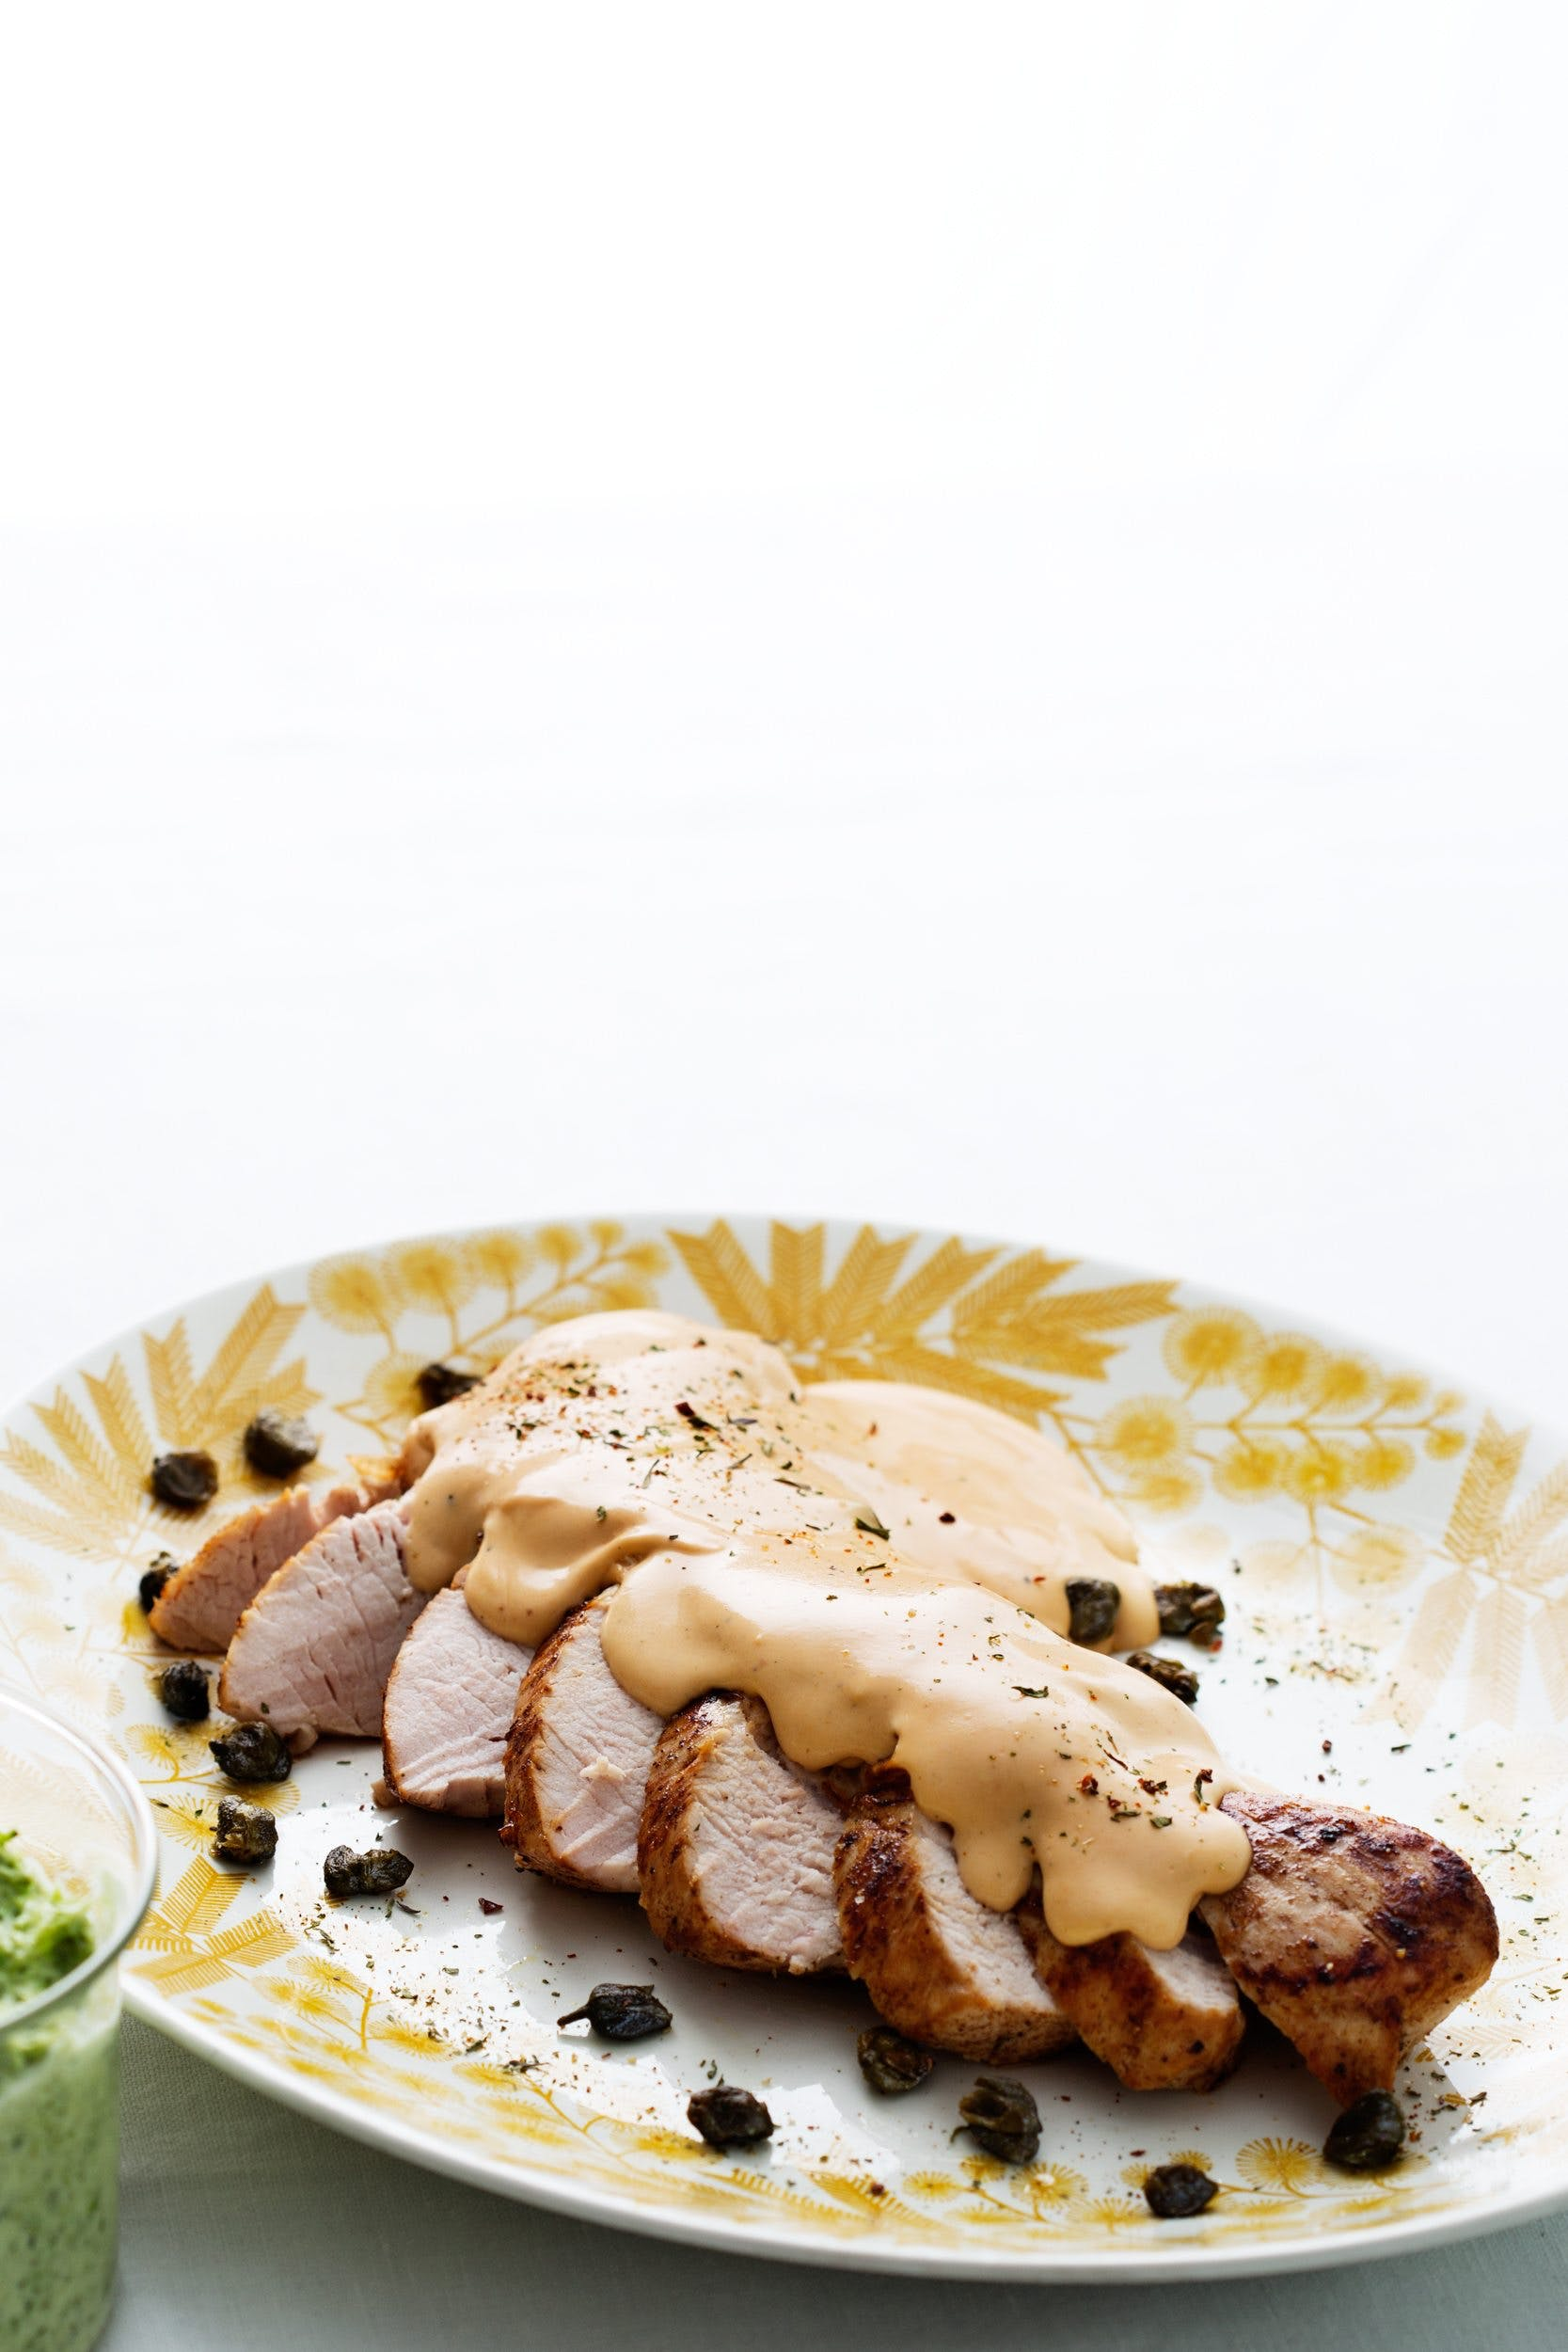 Keto turkey with cream-cheese sauce